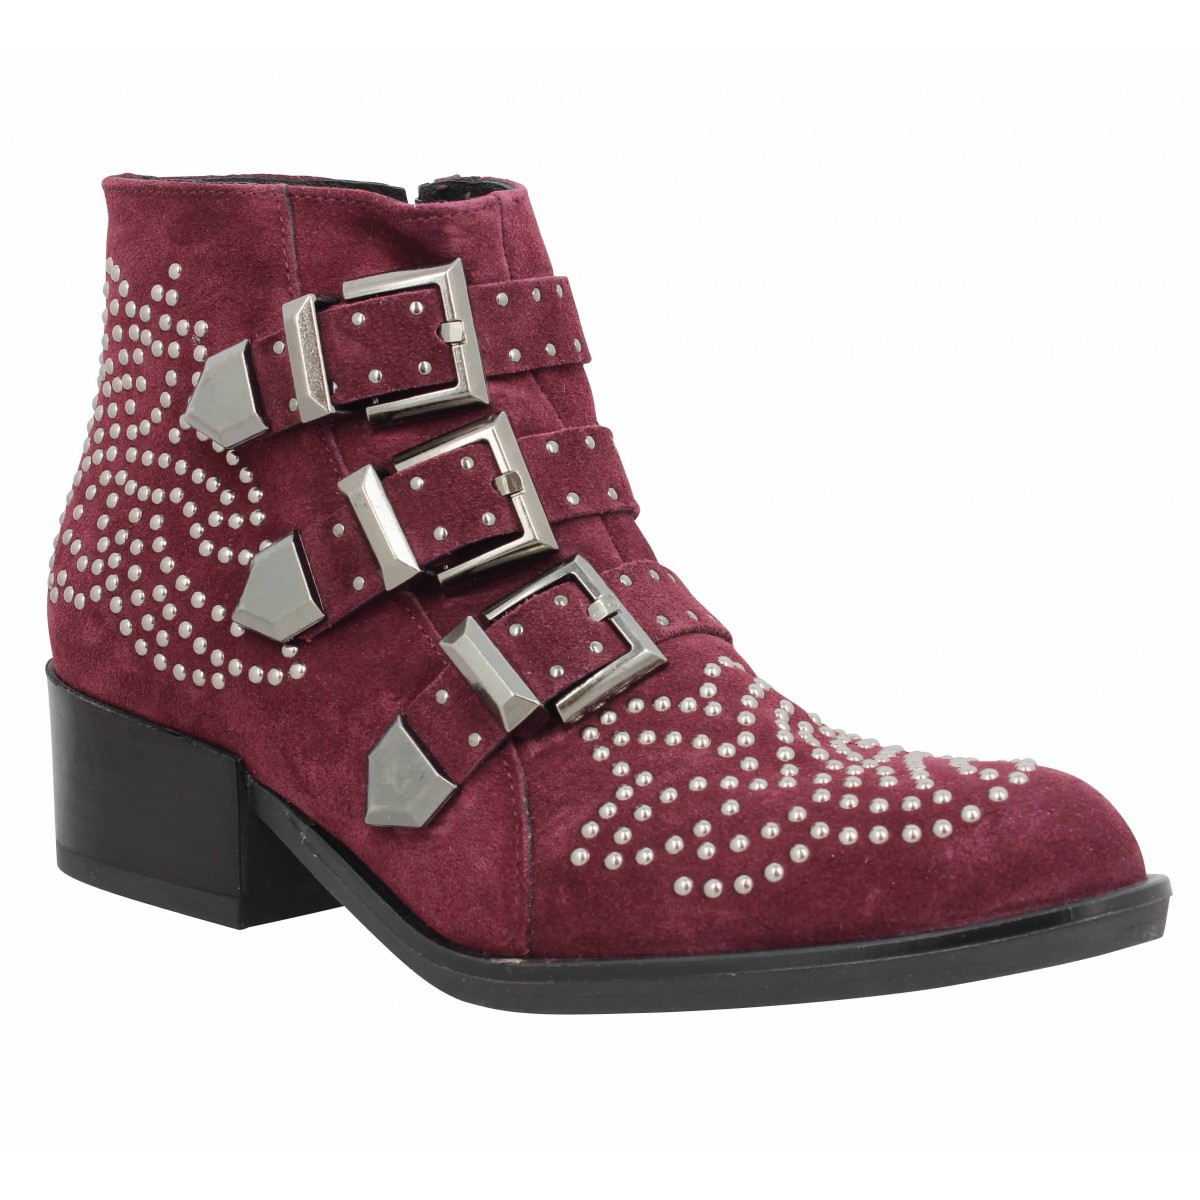 Bottines MORENA GABBRIELLI 747 velours Femme Bordeaux